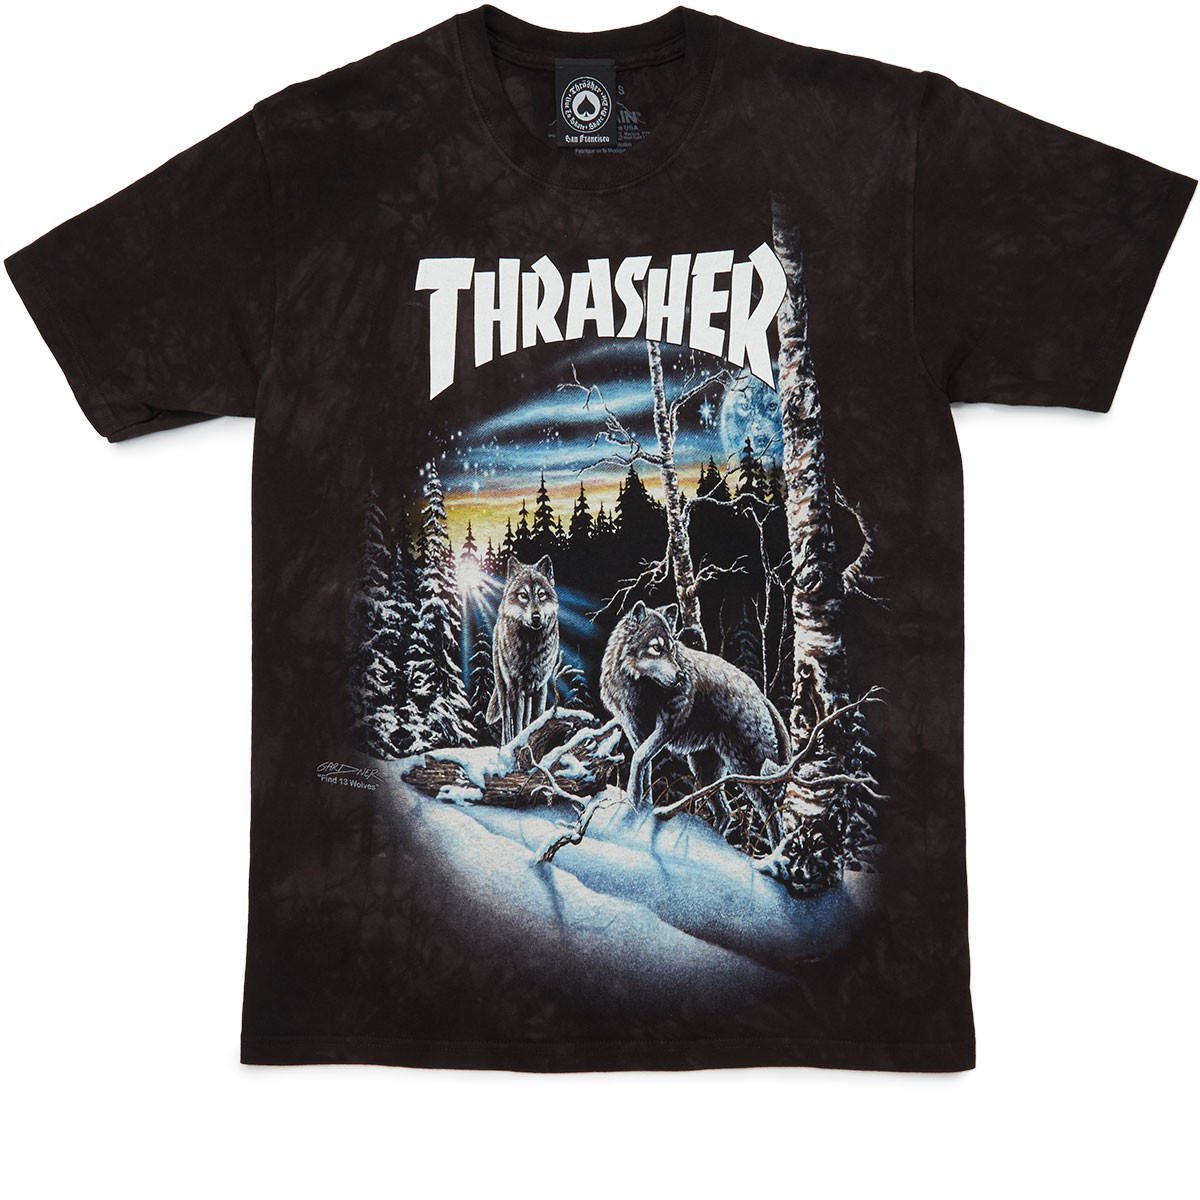 thrasher 13 wolves t shirt black tie dye. Black Bedroom Furniture Sets. Home Design Ideas